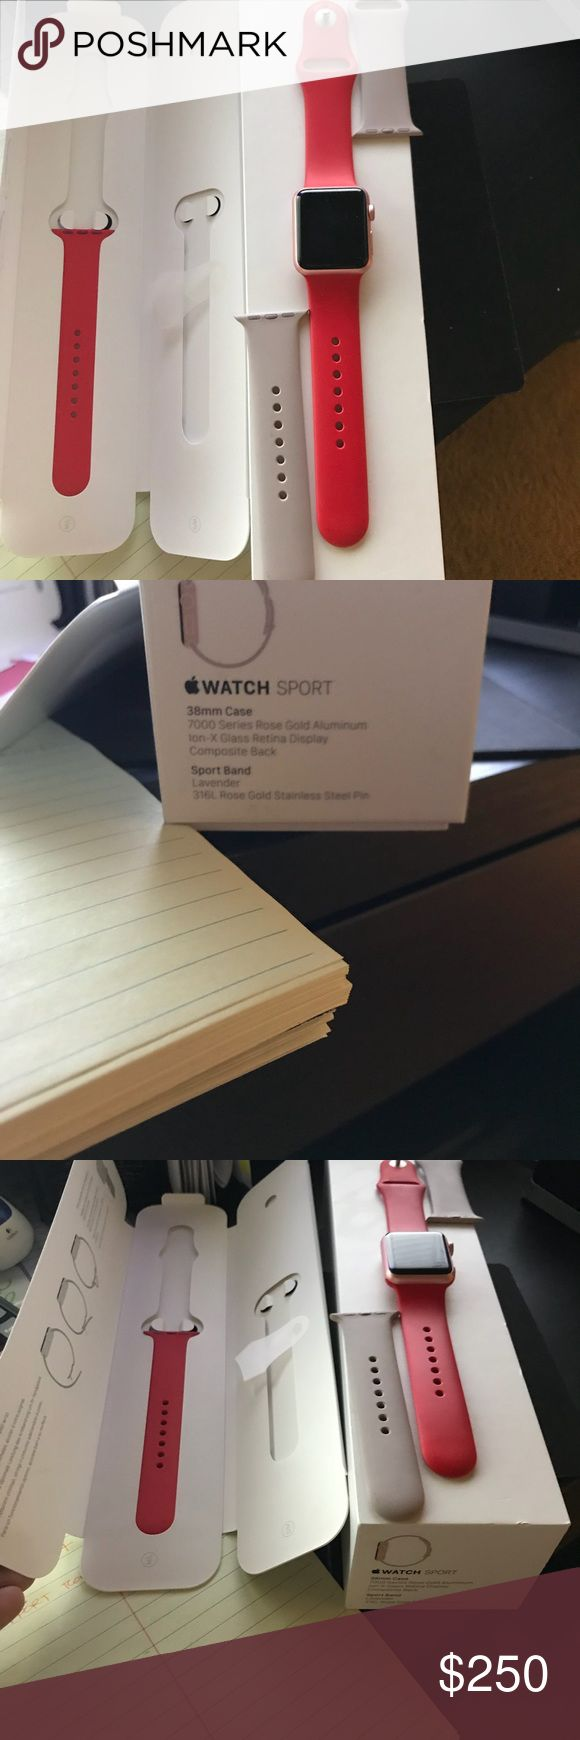 Apple Watch Sport - Rose Gold - 38mm Apple Watch Sport - Rose Gold 38mm 1st Gen - NO TRADES!! - Like new - Unlocked - Reset - Still has Apple Care coverage - Comes with all original items and packaging. Including the Product Red Watch Bands I bought as well in the price (originally $49). Please don't ask to trade. Please don't ask about other sites. No haggle. Take it or leave it. Accessories Watches